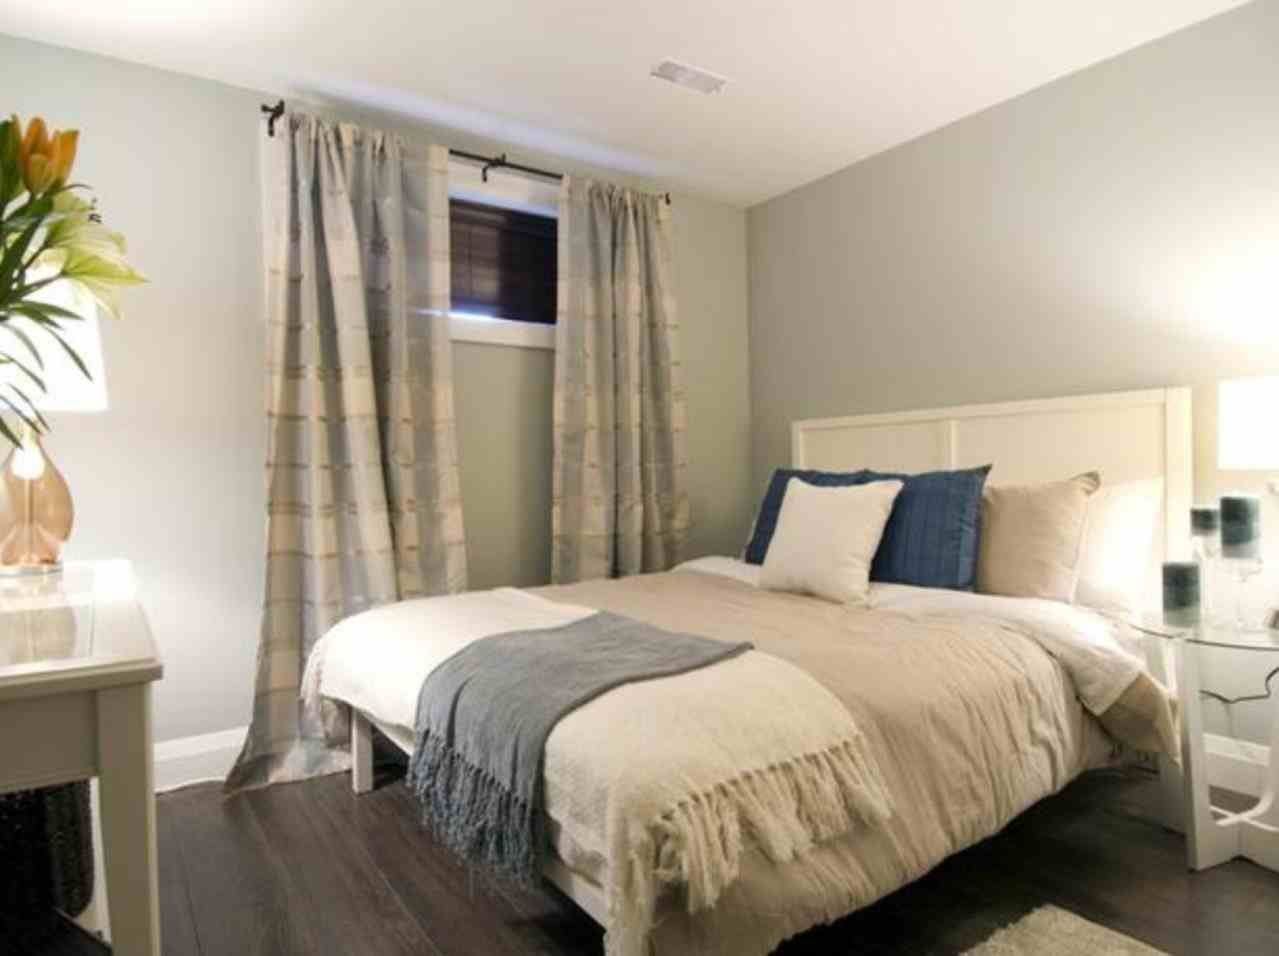 New Post basement bedroom ideas no windows visit Bobayule Trending